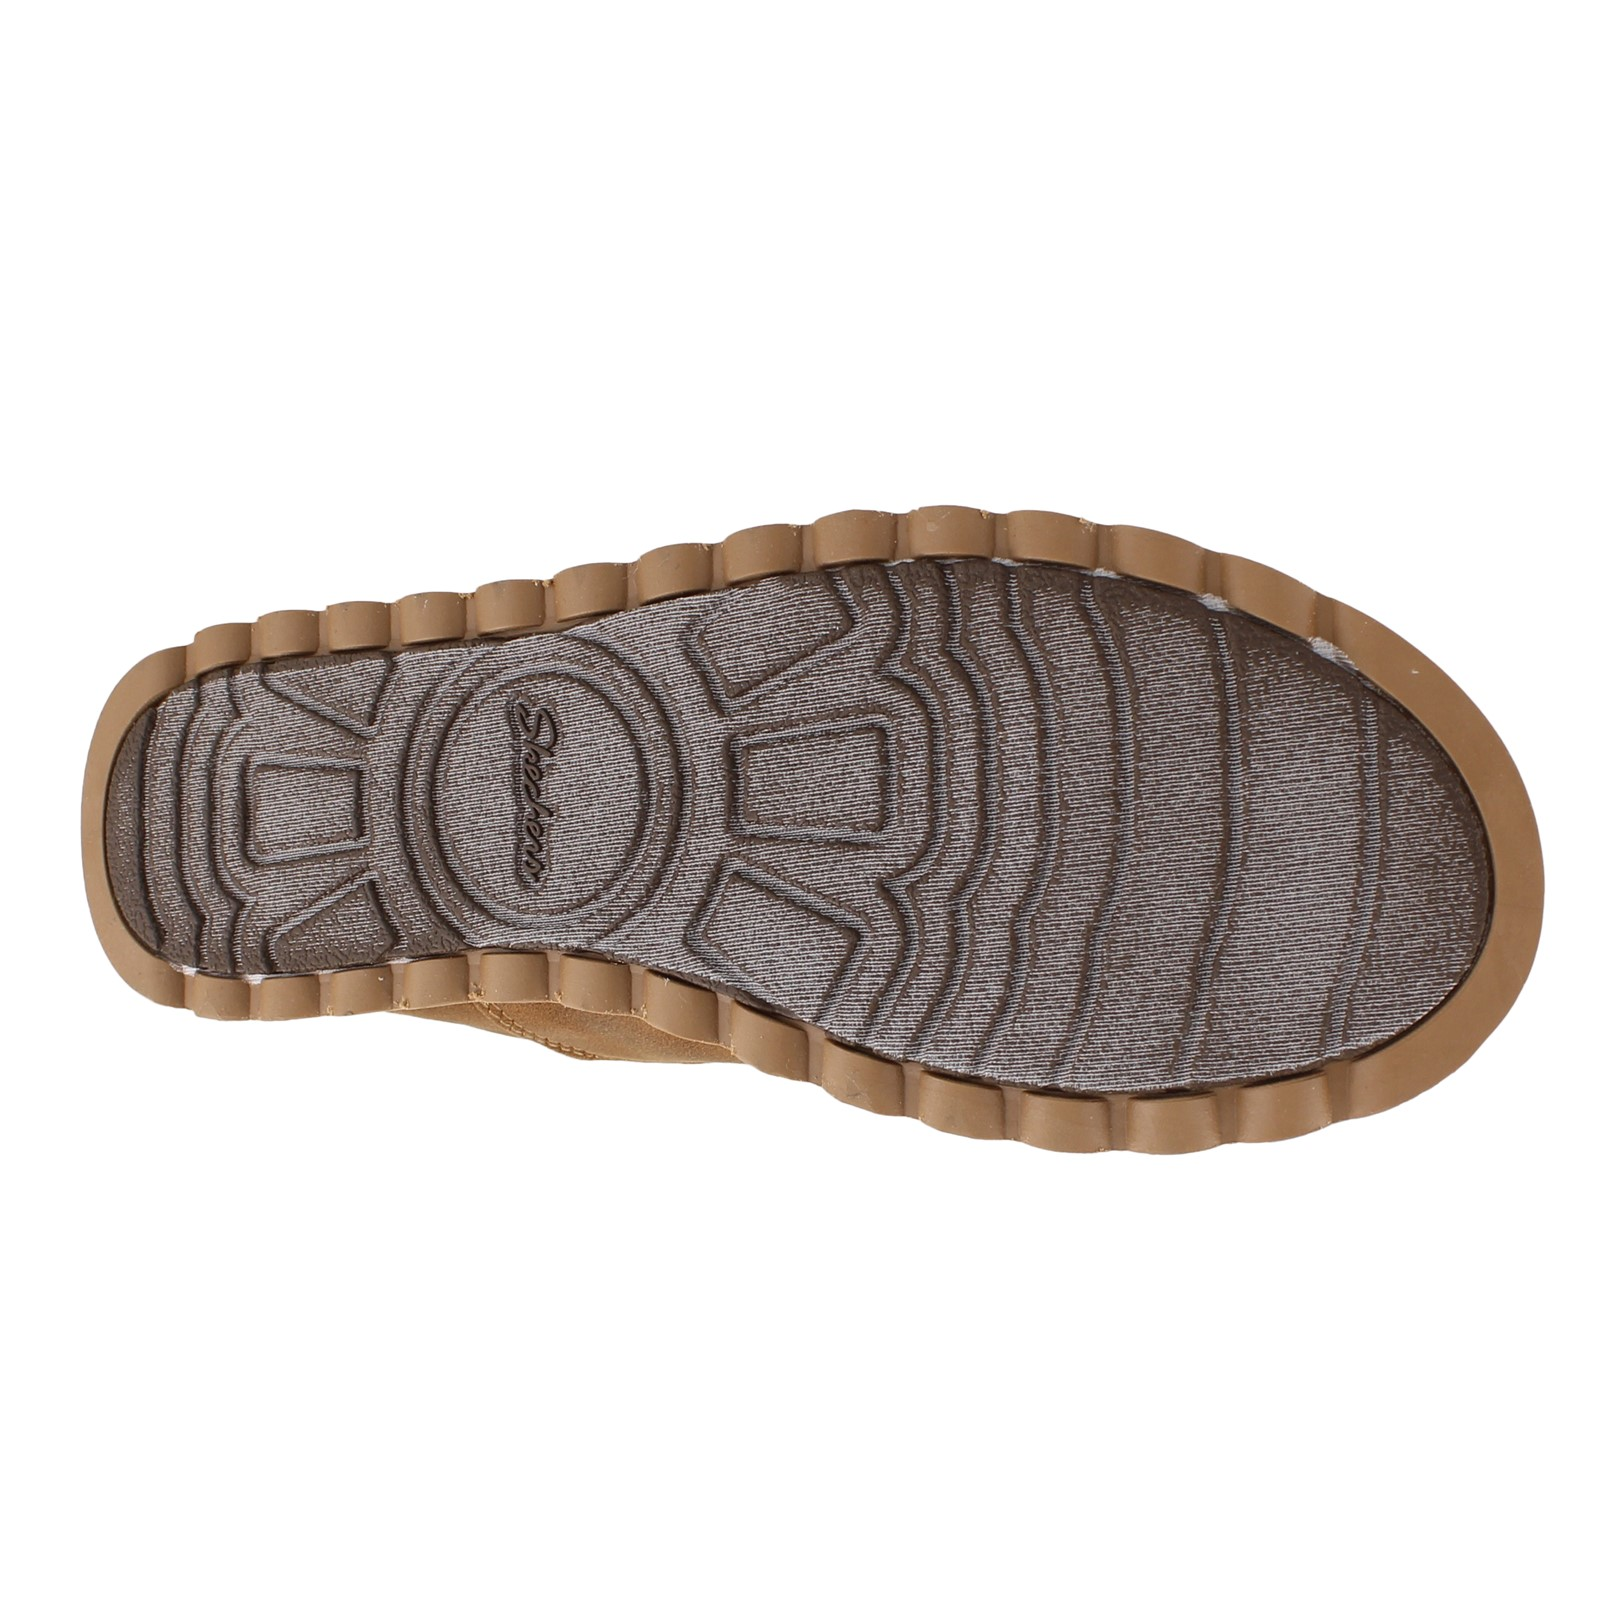 aff4cd5ebb87 Next. add to favorites. Women s Skechers